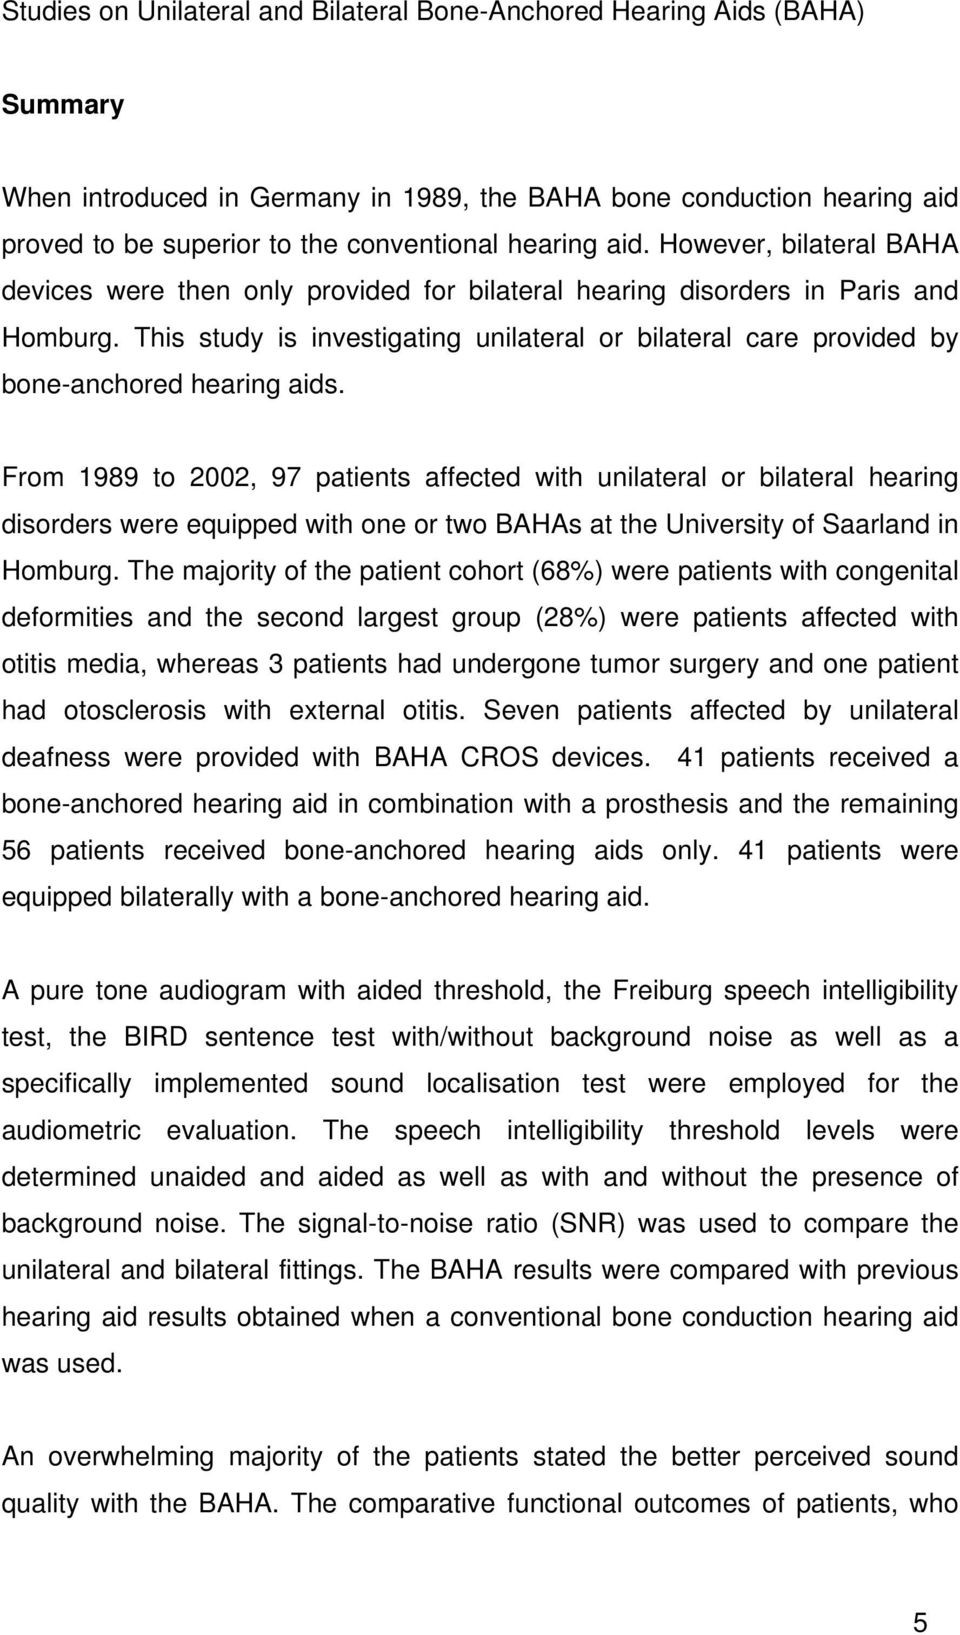 This study is investigating unilateral or bilateral care provided by bone-anchored hearing aids.